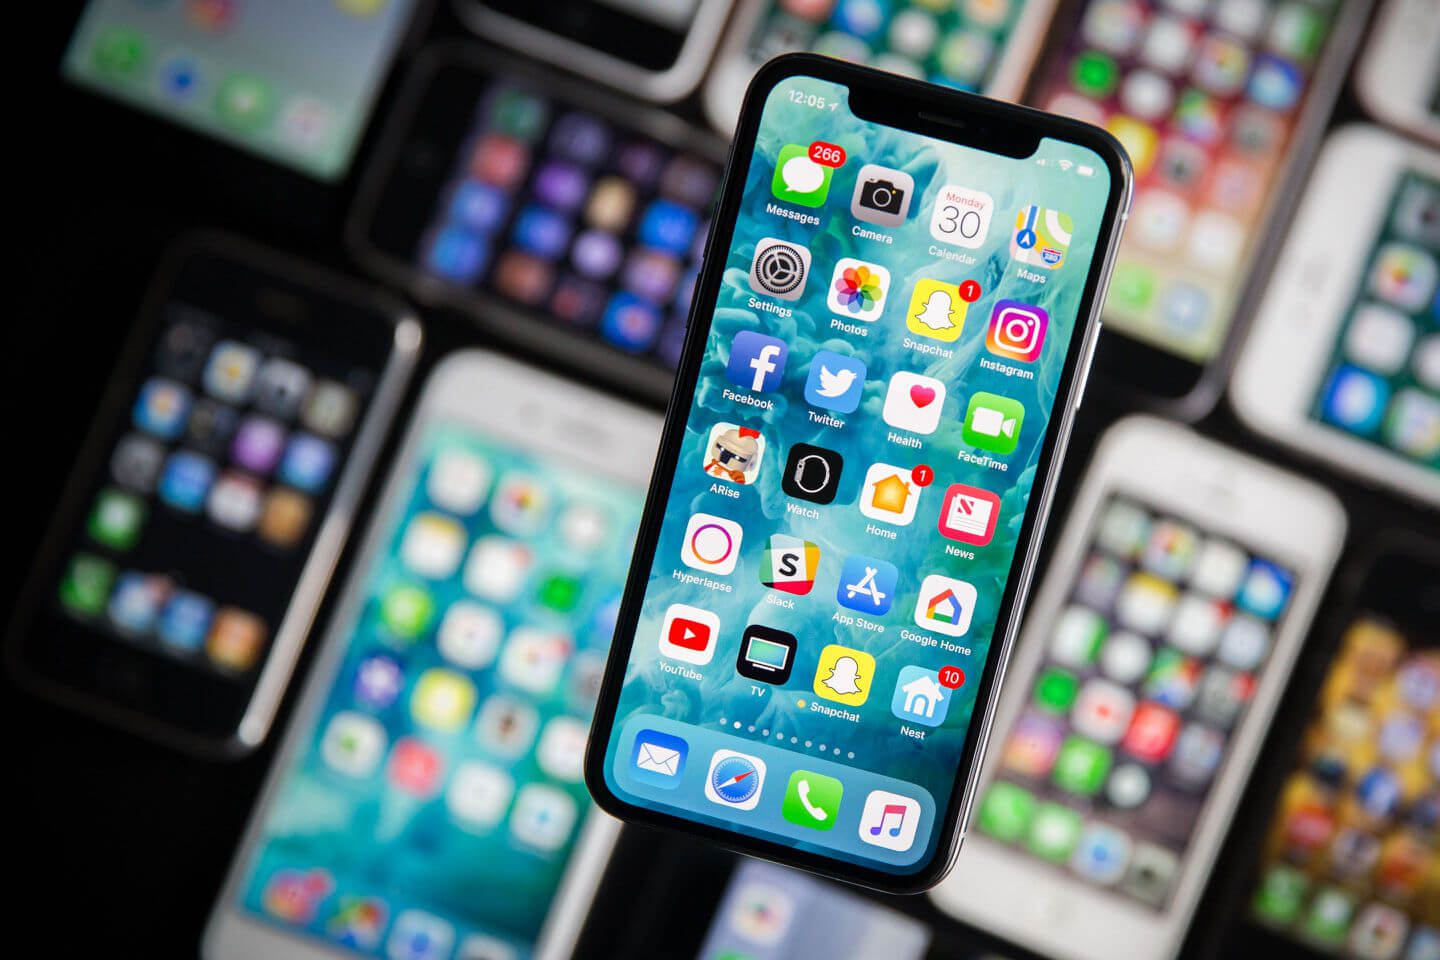 Next generation iPhones may have charging circuitry designed by Apple